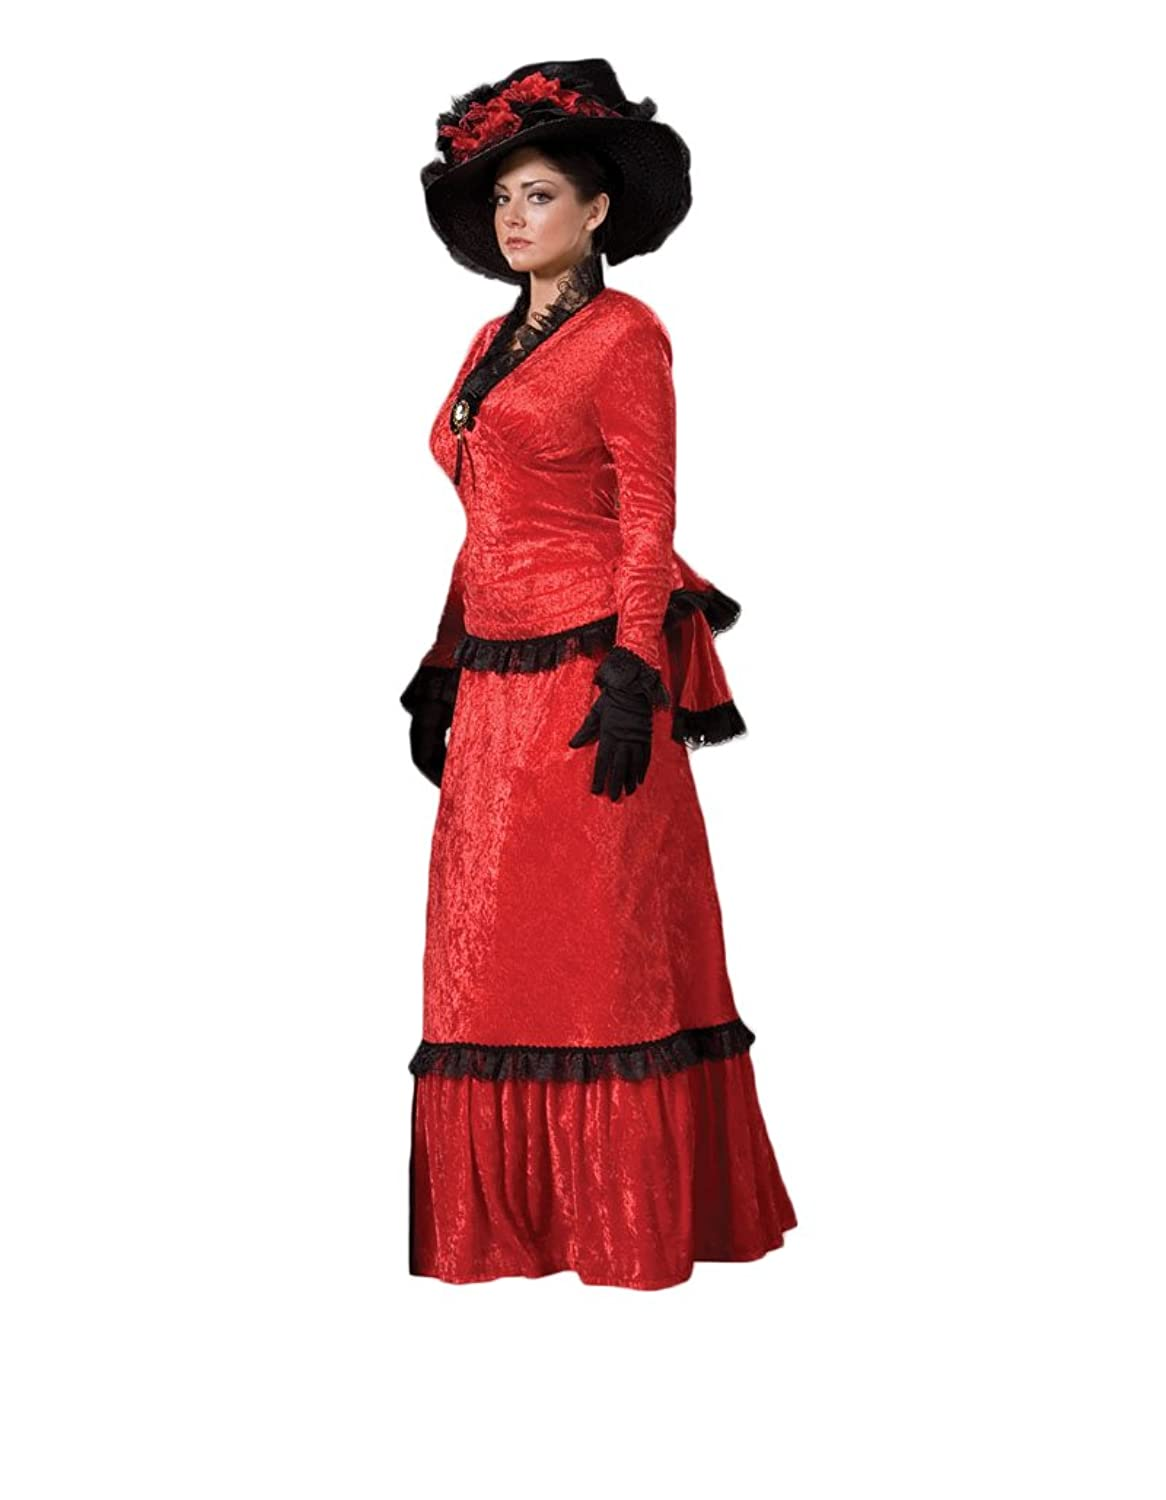 Victorian Dresses | Victorian Ballgowns | Victorian Clothing  Sadie Dress Theater Costume $239.99 AT vintagedancer.com